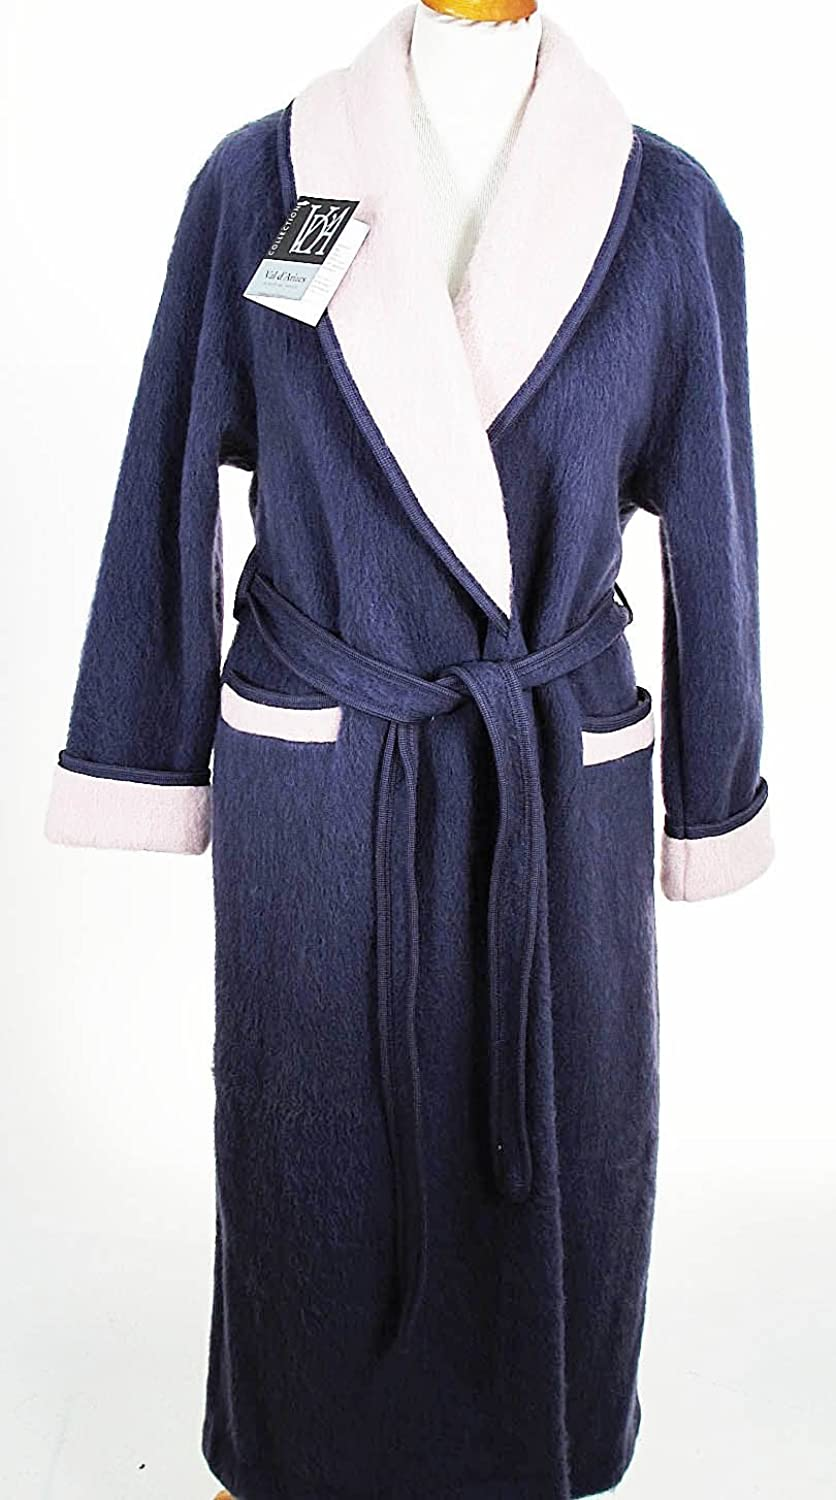 Val d'Arizes Laine des Pyr茅n茅es - Wool robe crossed the Pyrenees contrasting collar plum dragee - 42